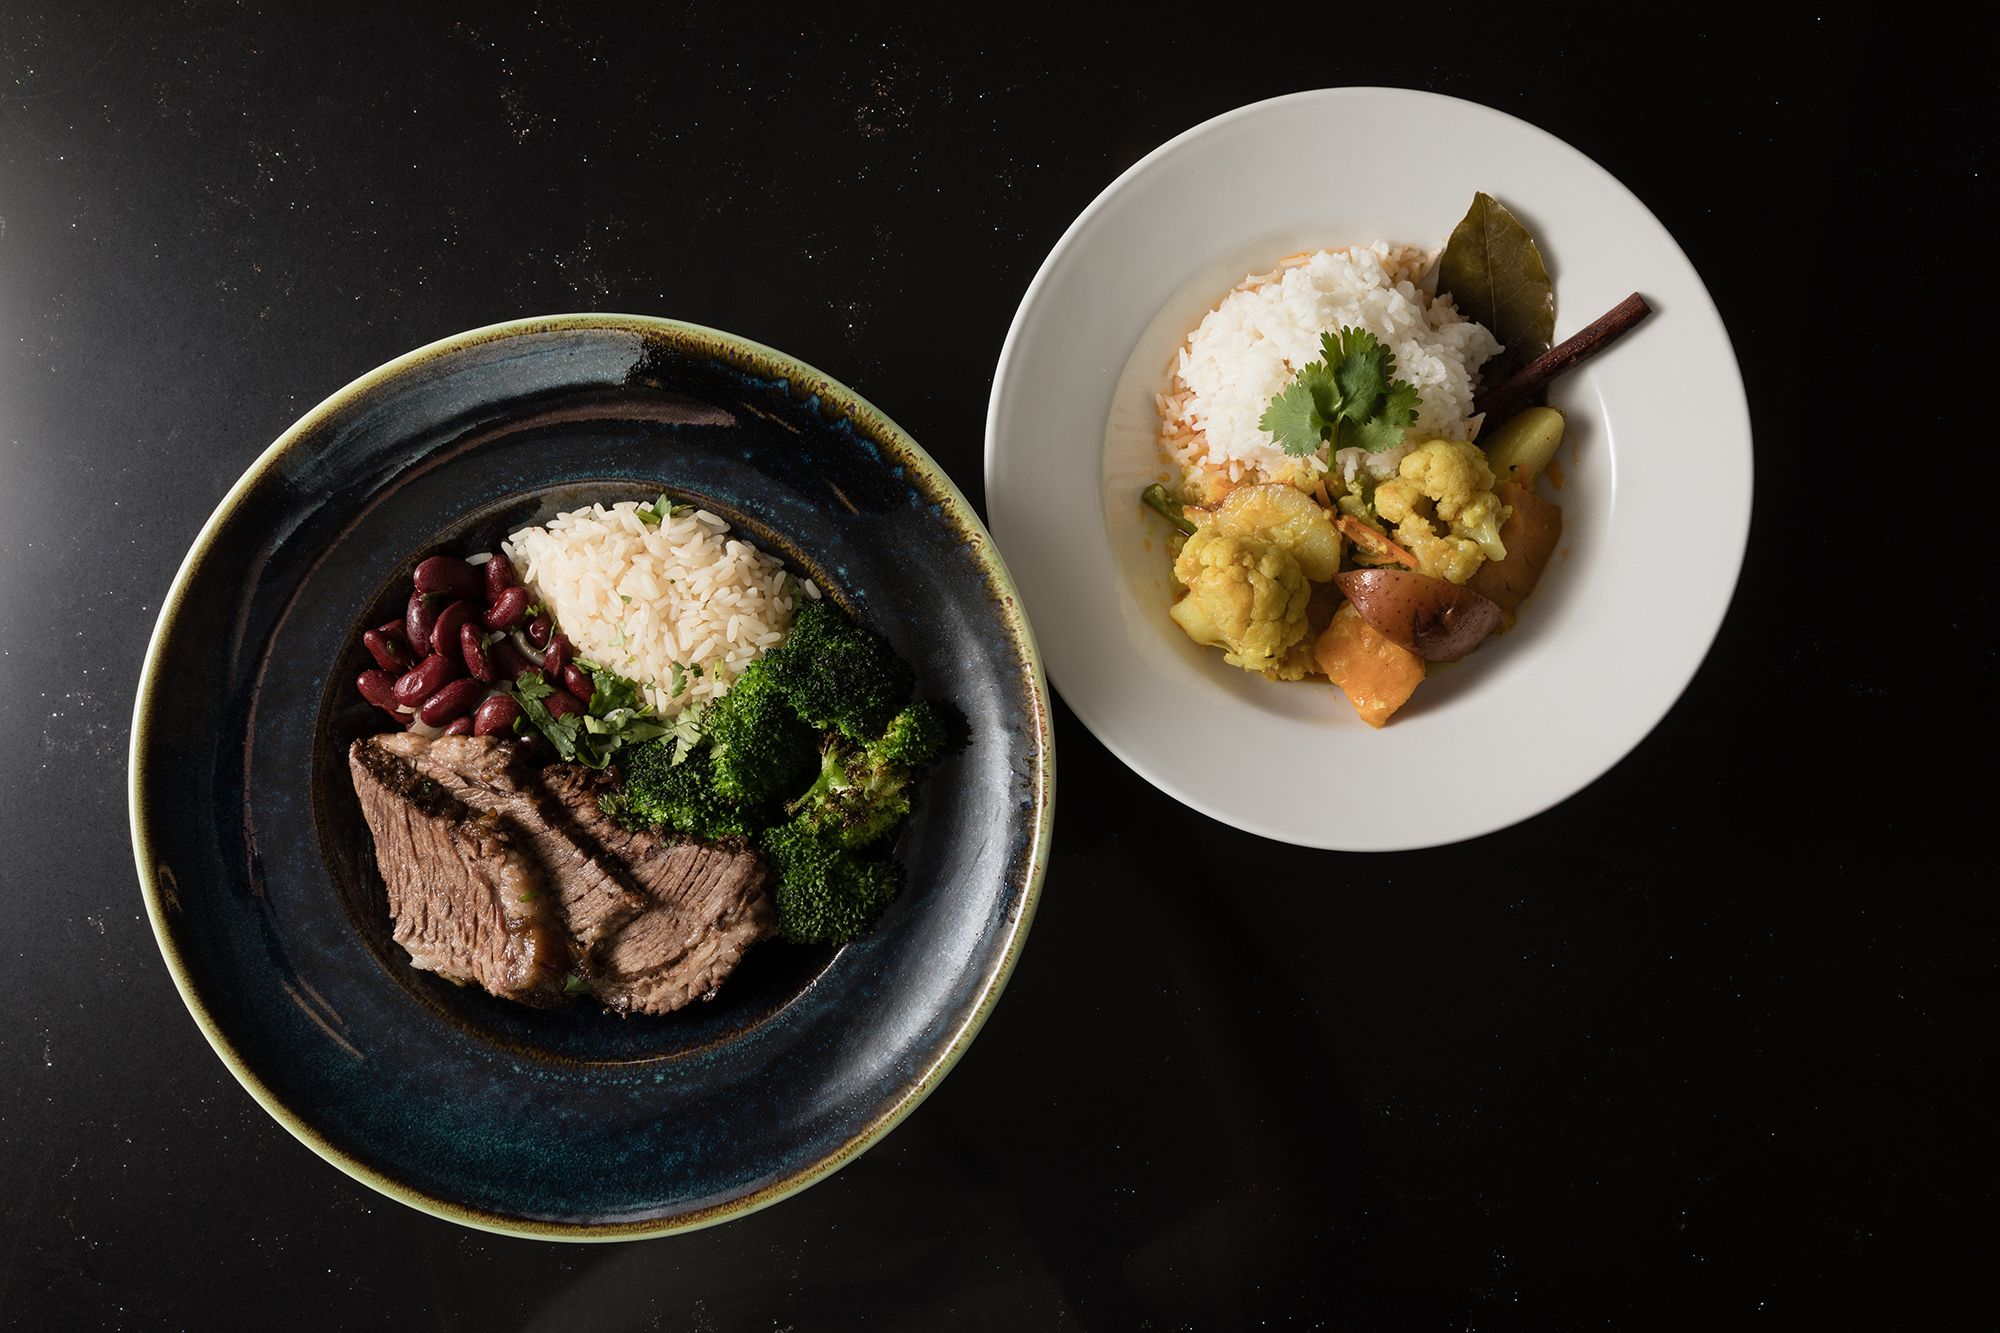 Healthy, hearty options are on the menu at Skillman Dining Hall's Simple Servings station